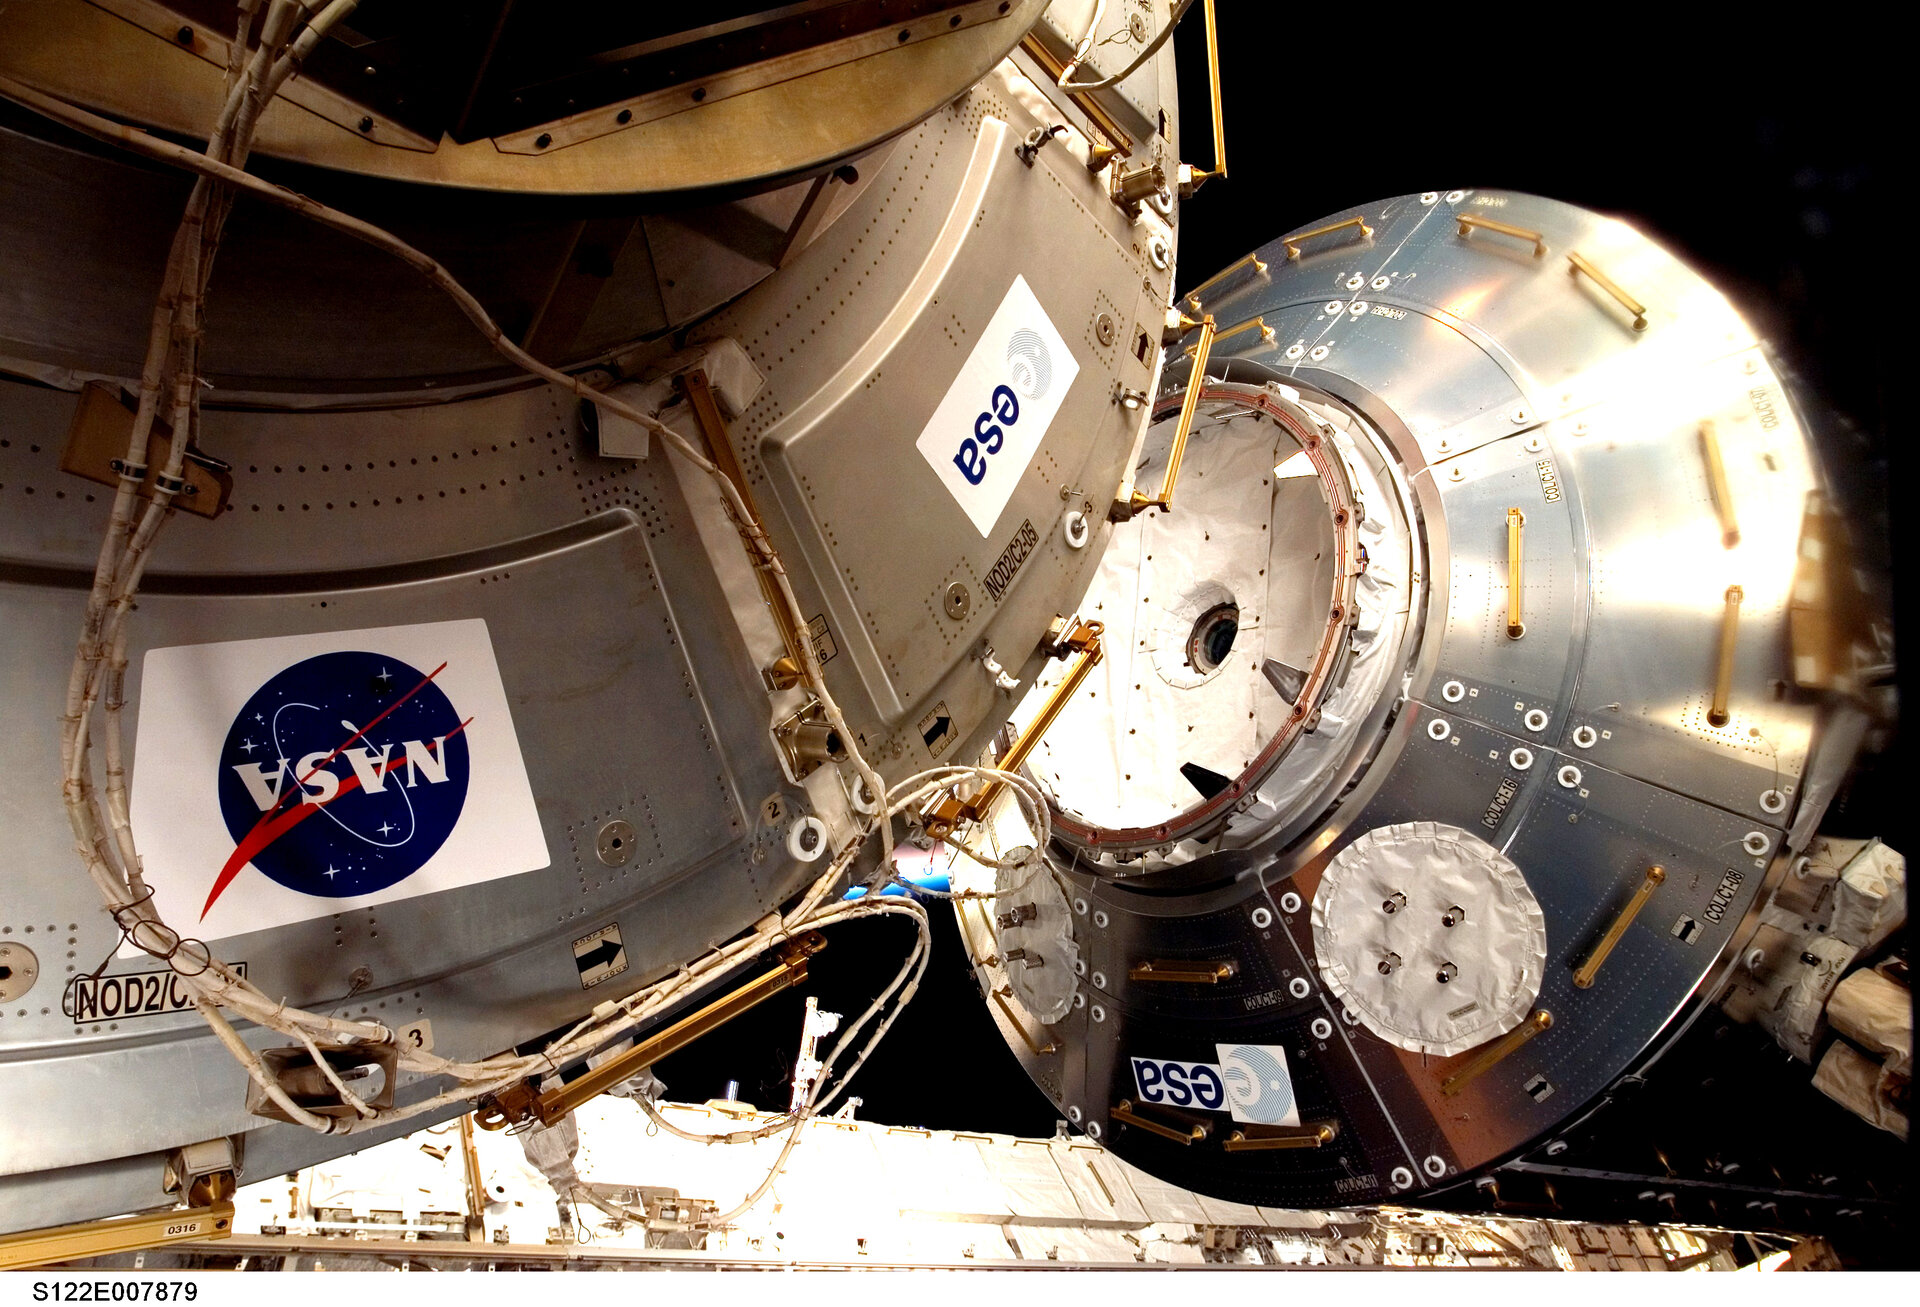 Columbus was attached to ISS during the recent STS-122 Shuttle mission